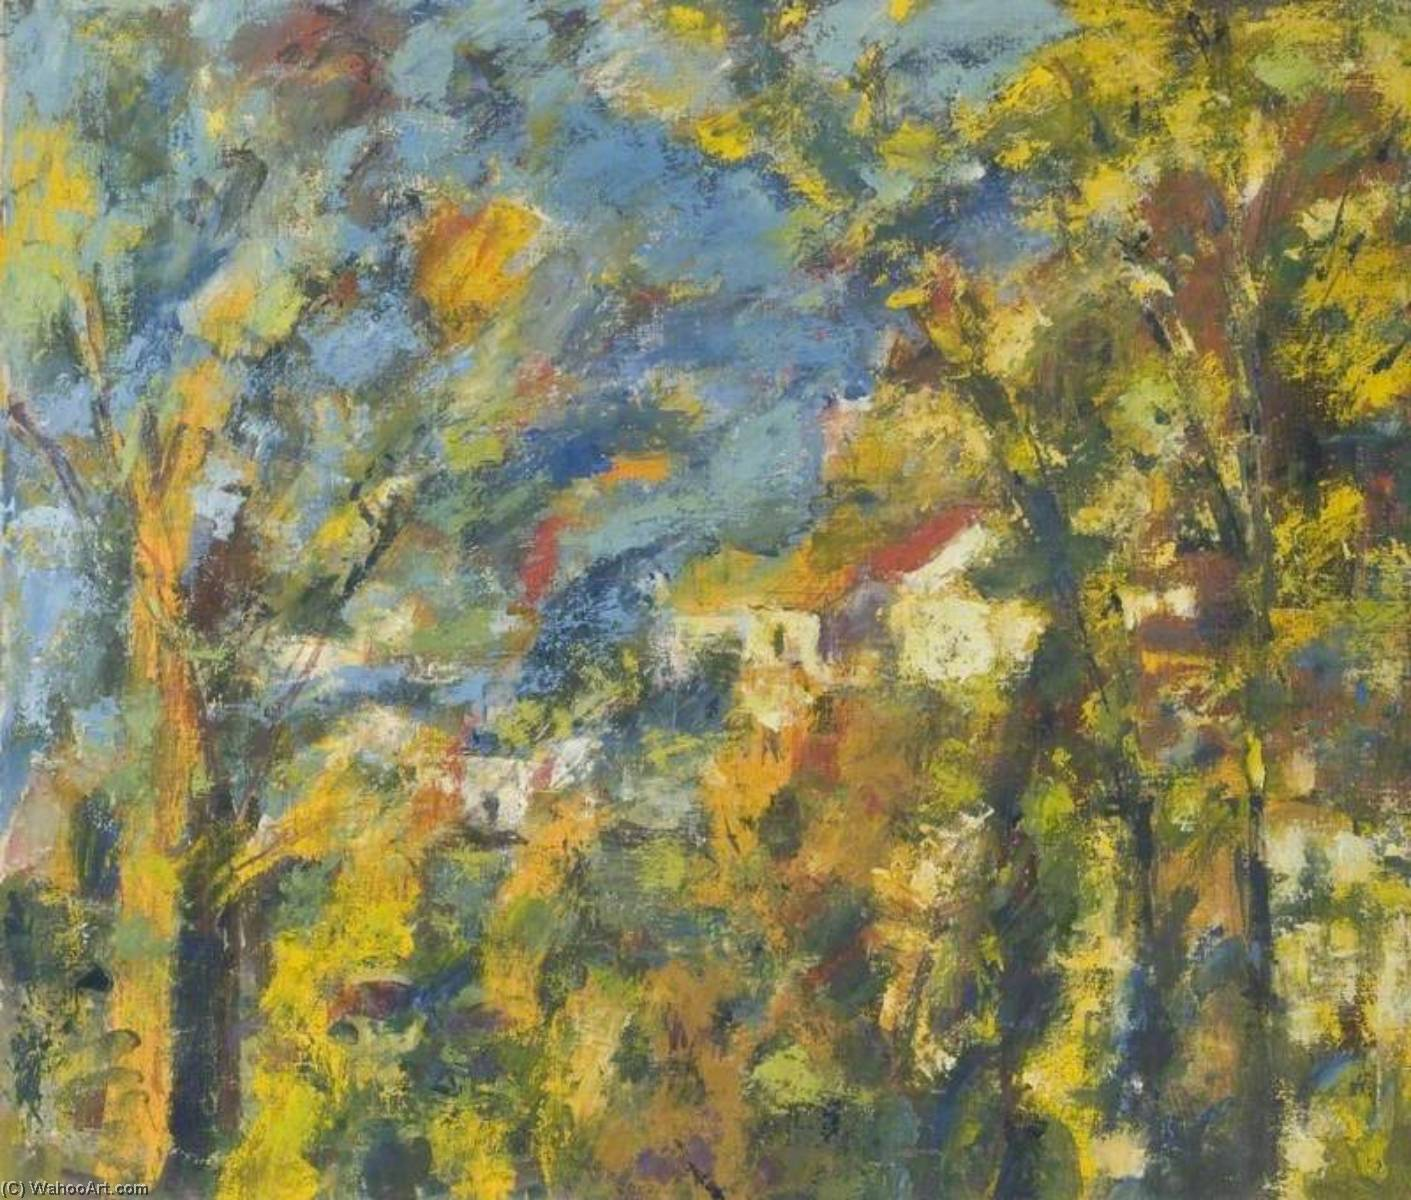 Hillside and Houses Framed by Trees, an Impressionist Study, Oil On Canvas by Theodor Kern